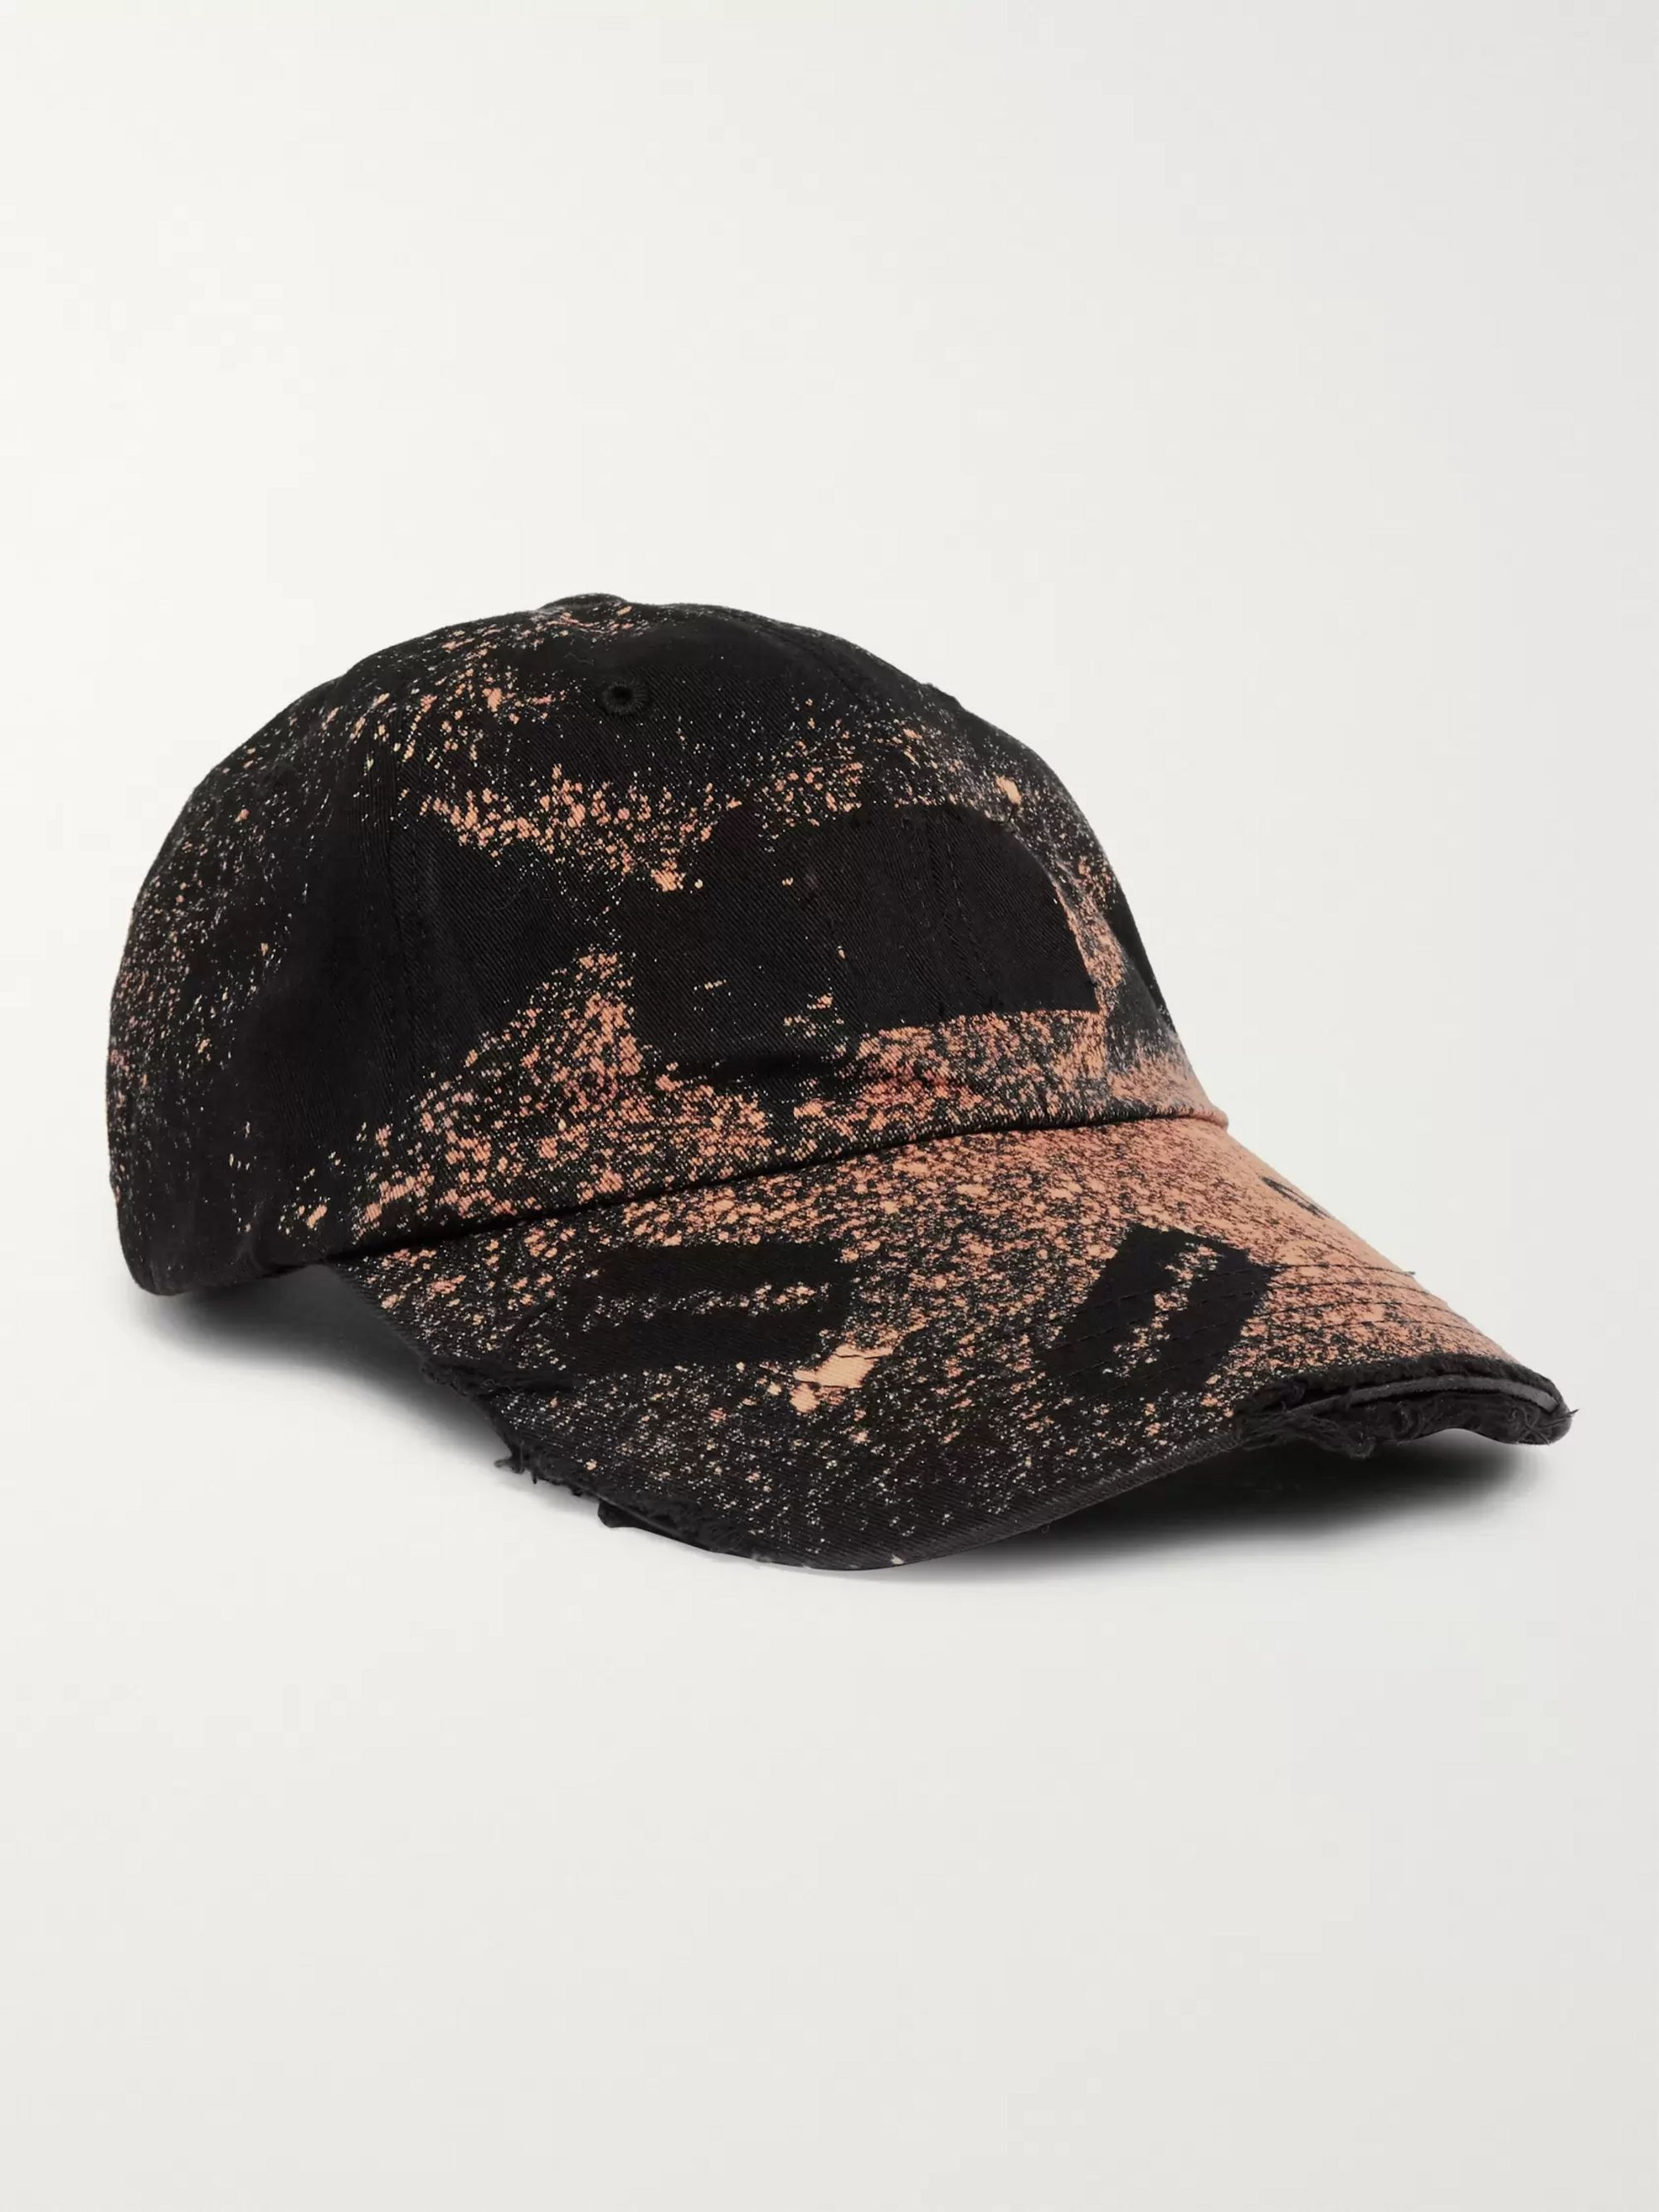 99%IS- Distressed Spray-Painted Cotton-Twill Baseball Cap